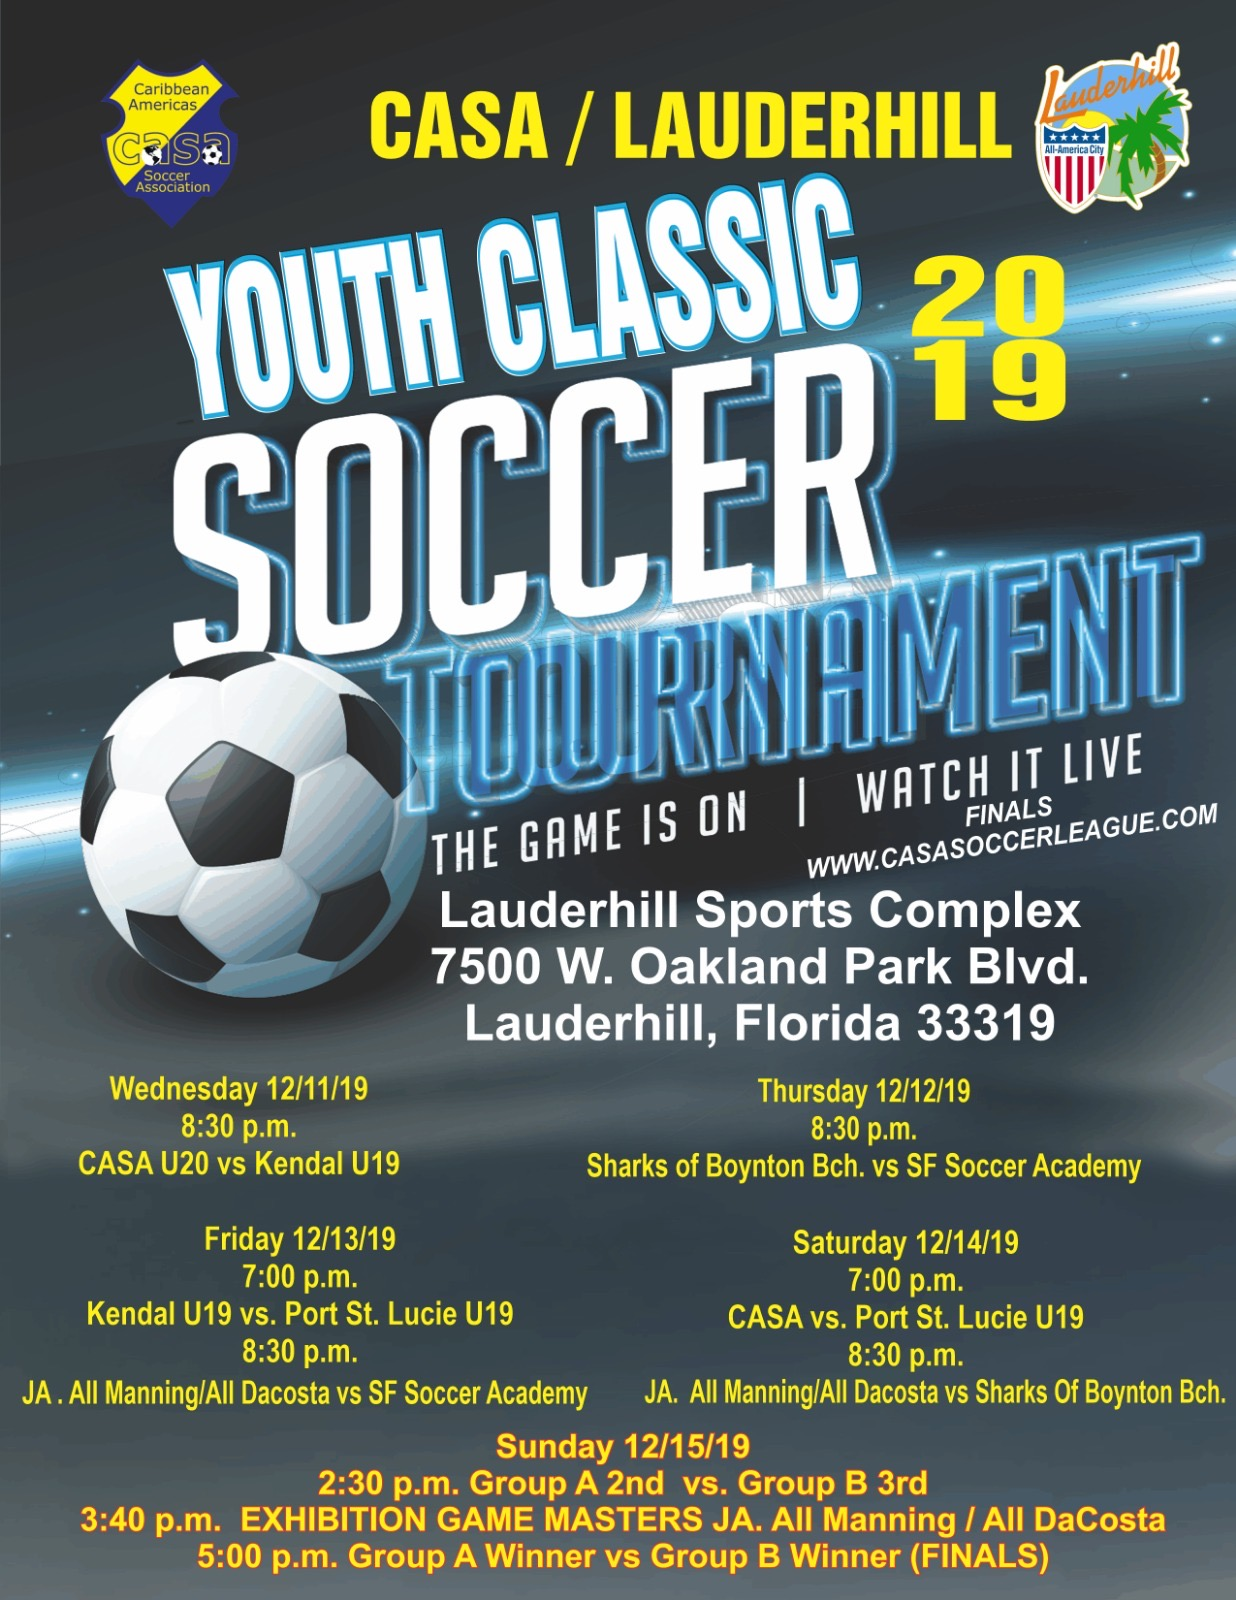 CASA Youth Soccer Classic